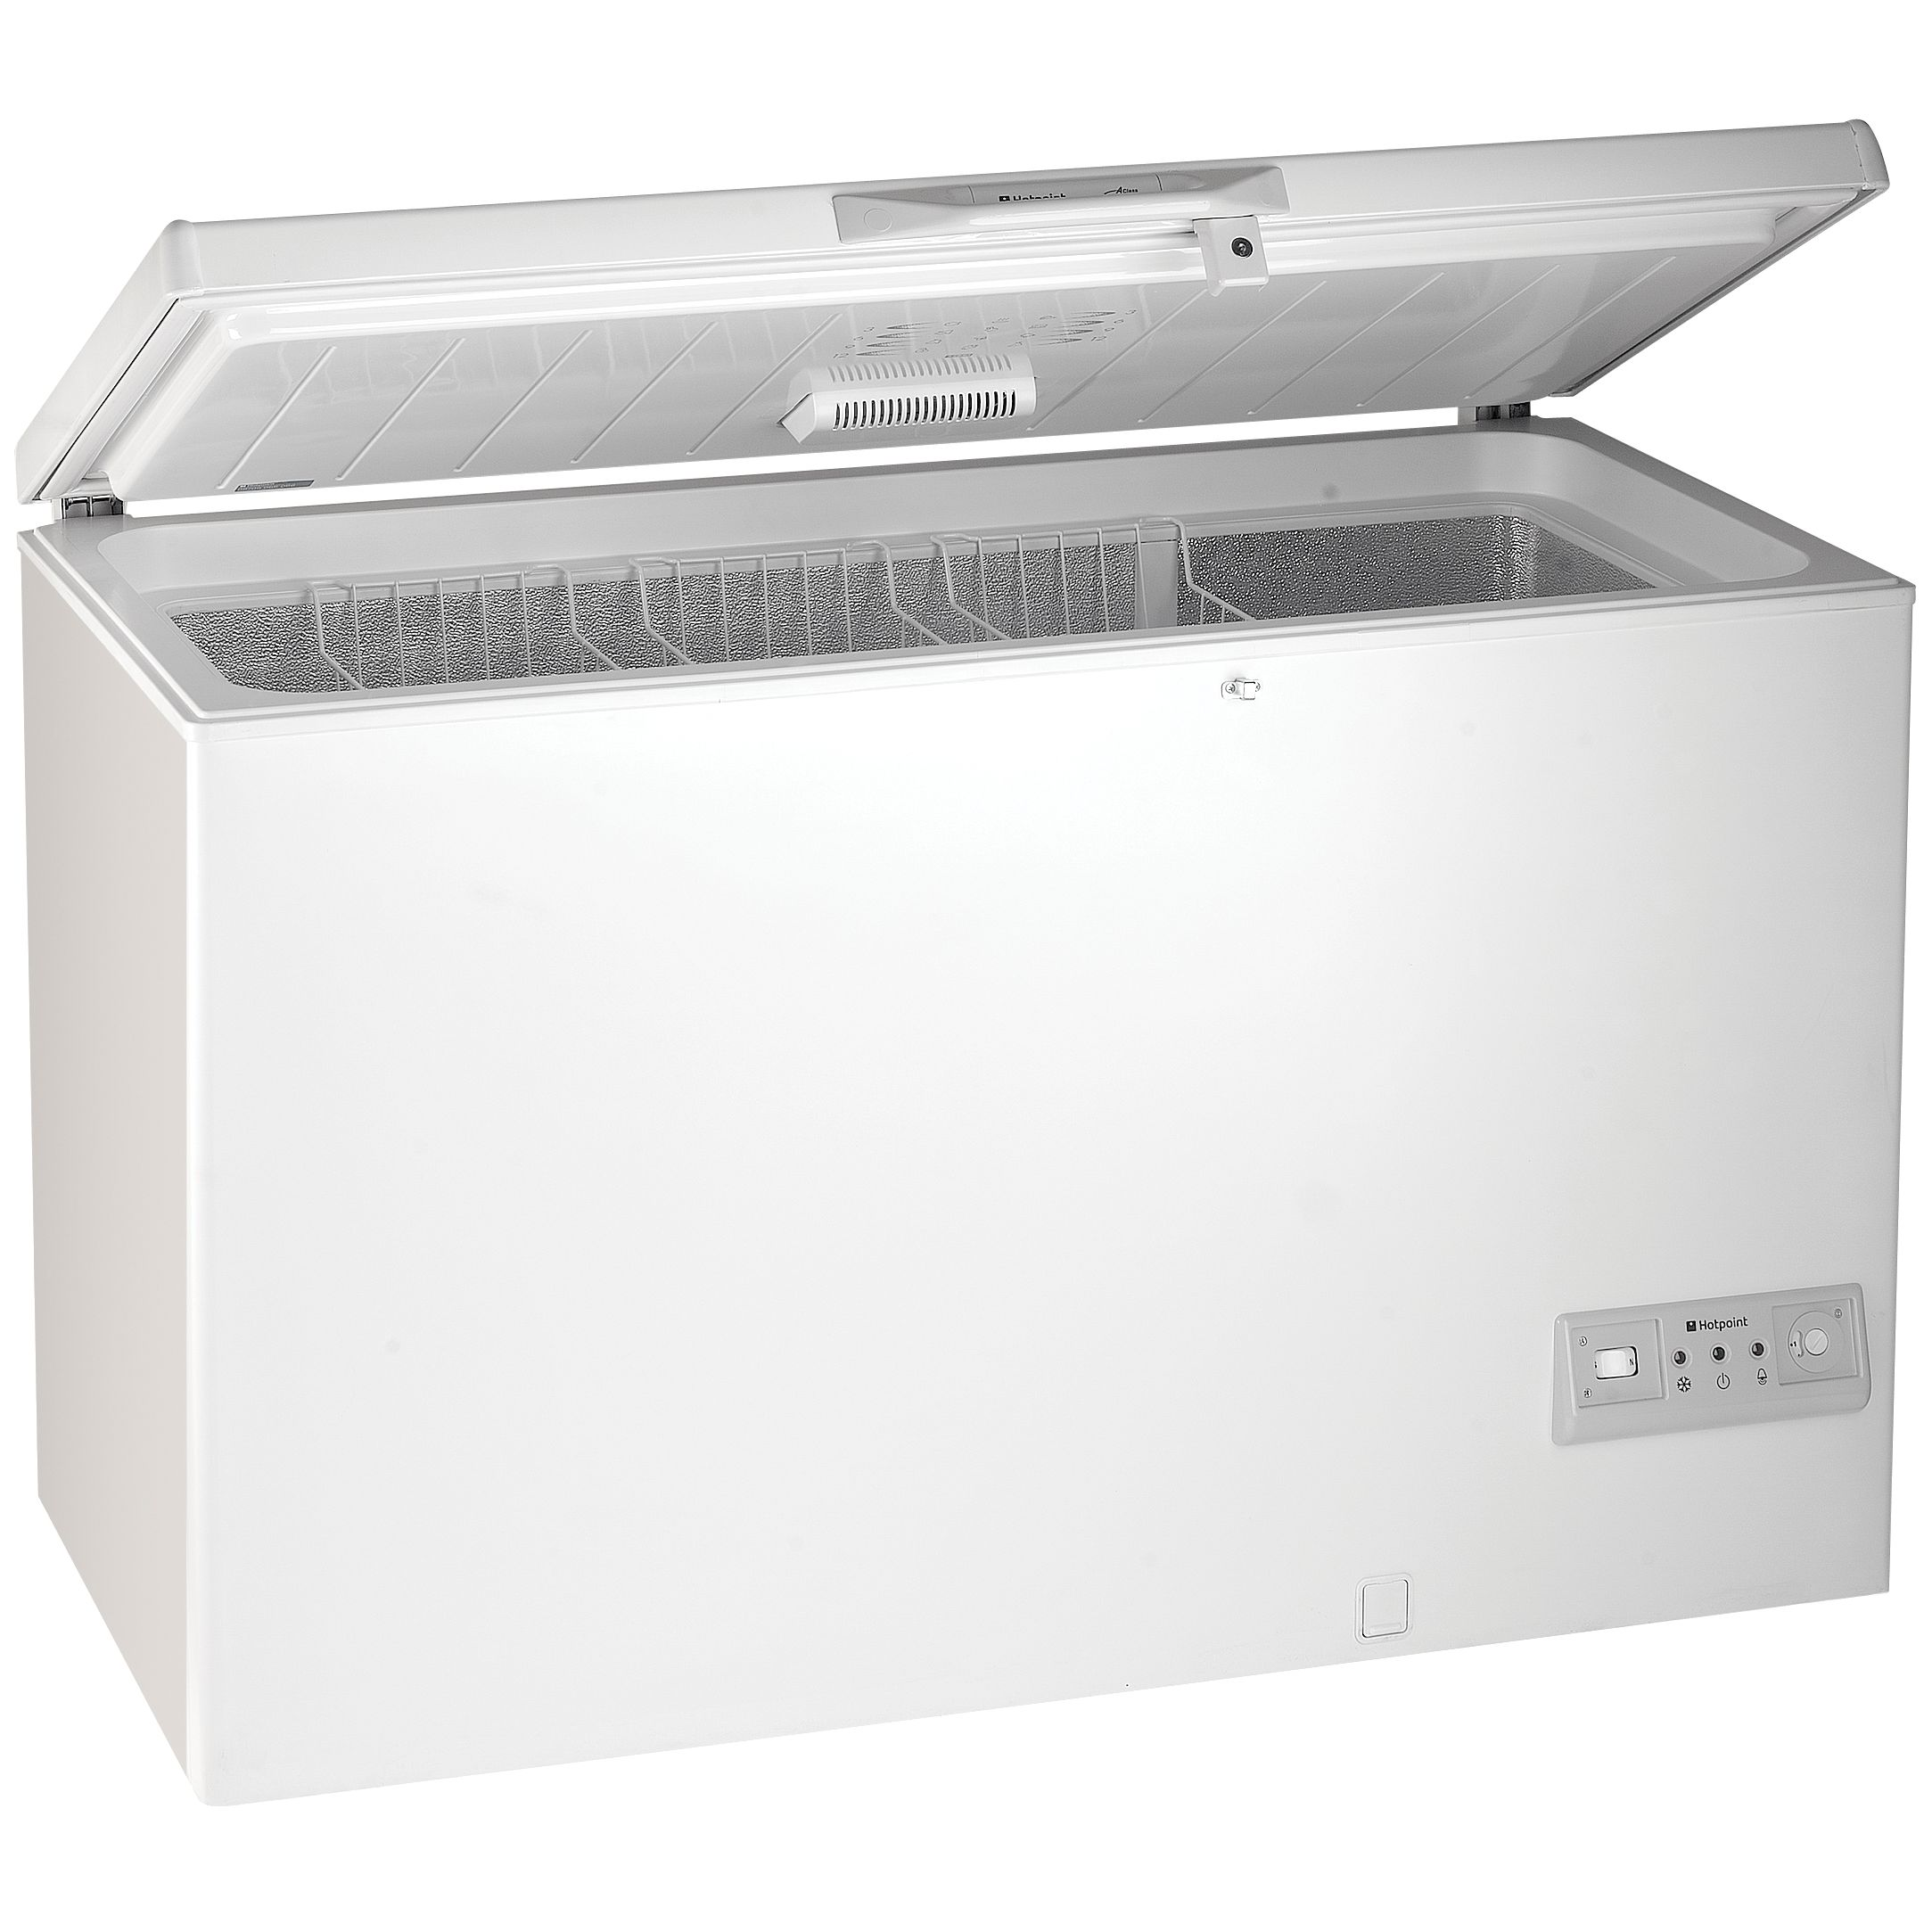 Hotpoint RCNAA53P Chest Freezer